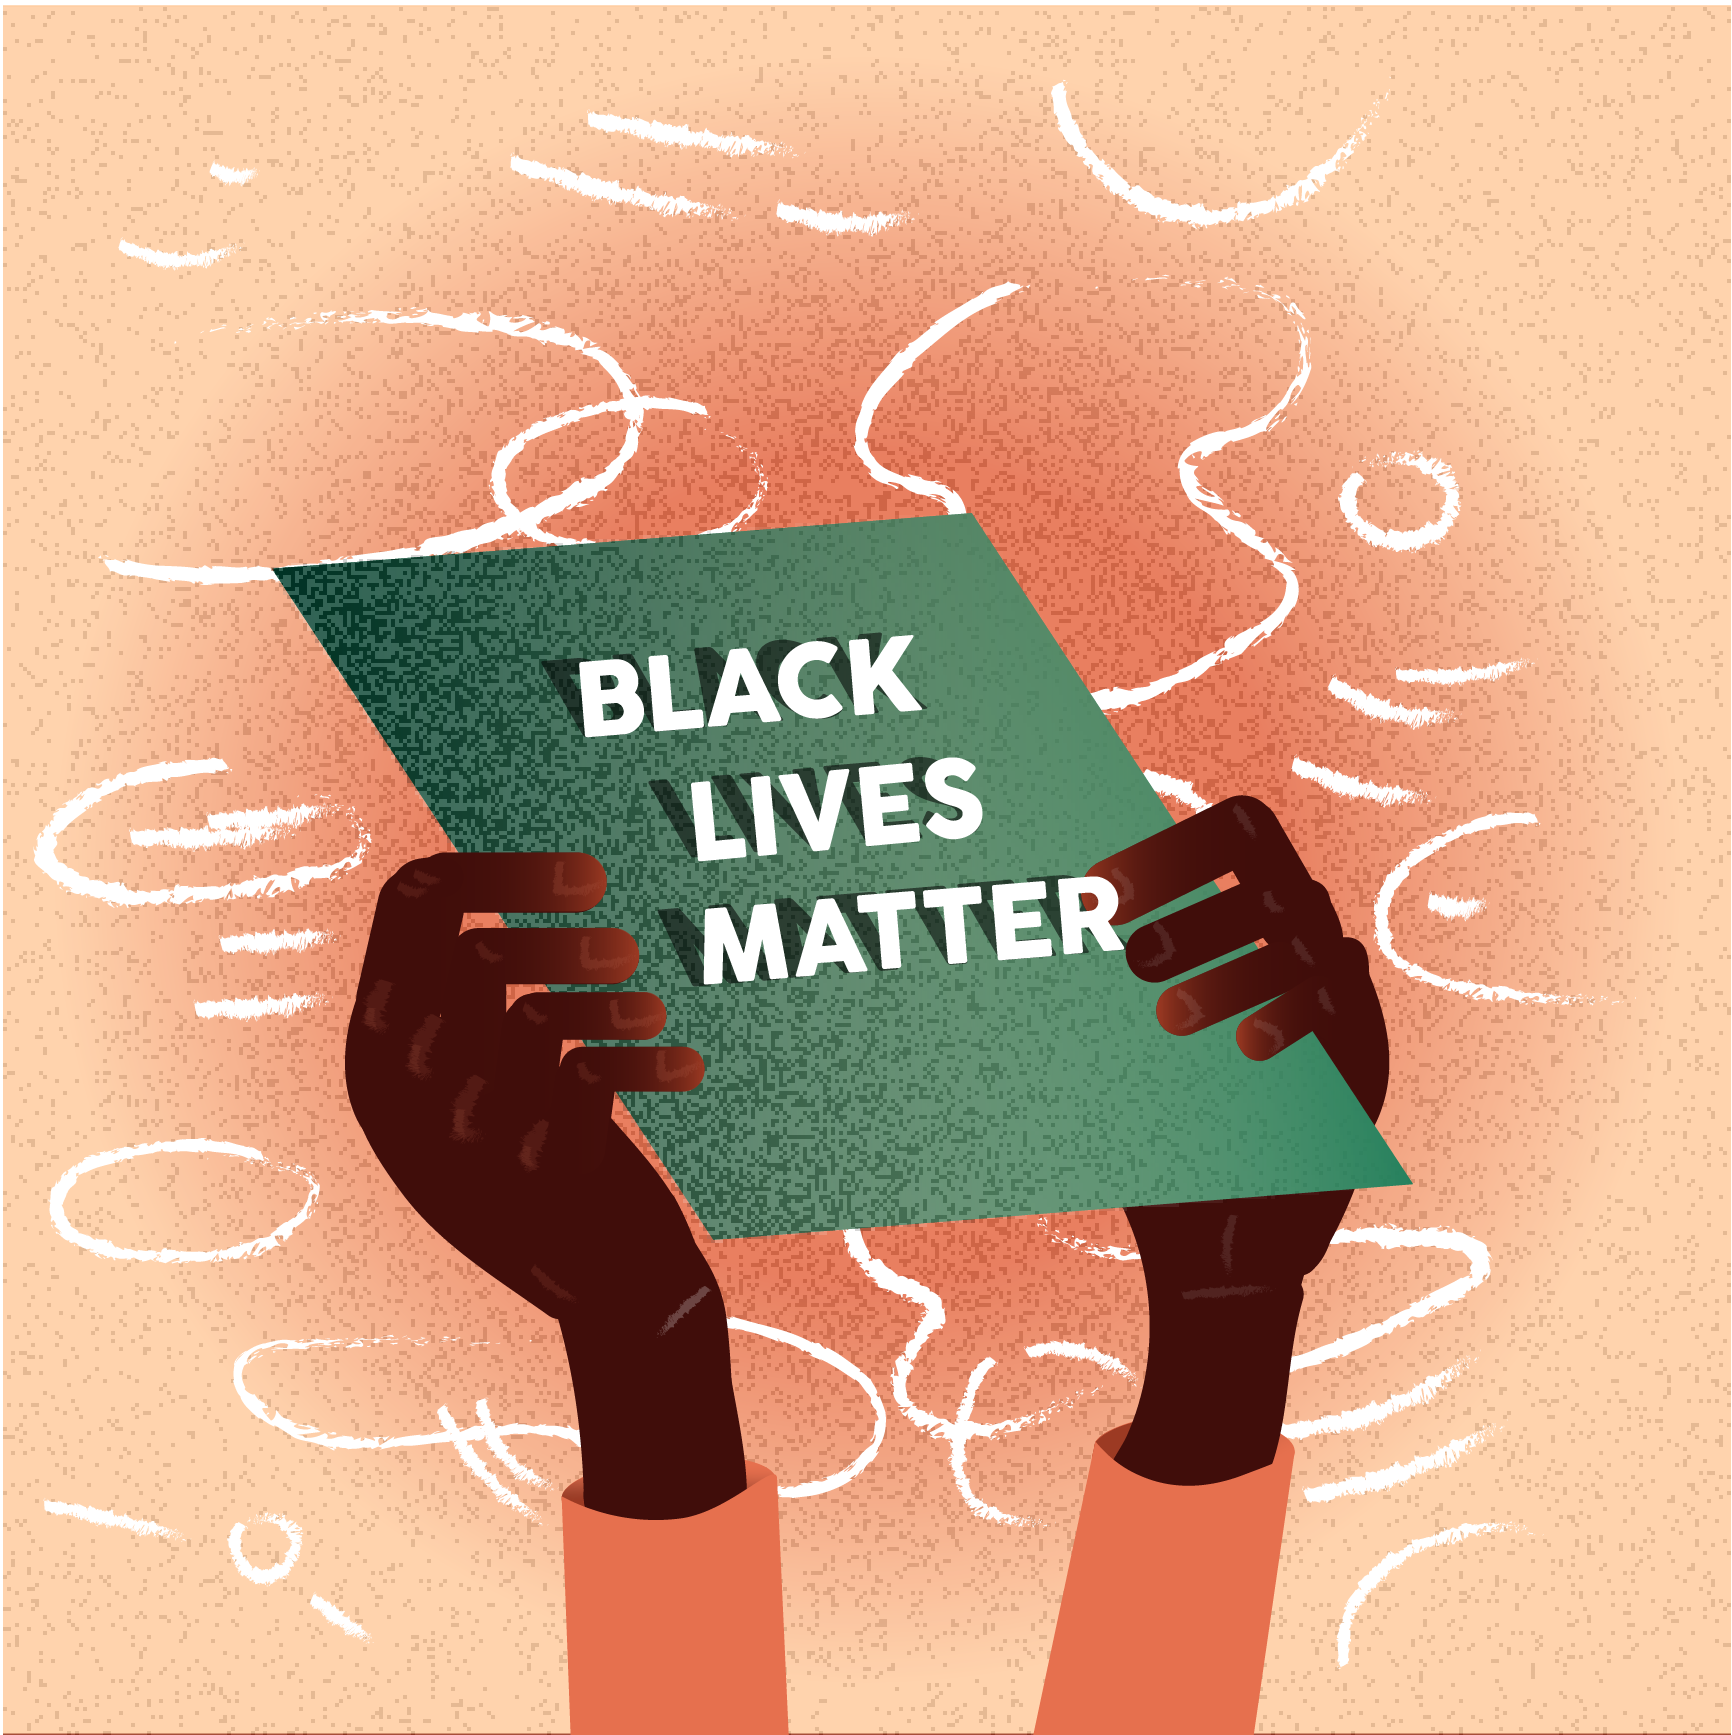 Kyler Wesp interviews black spark writers about what this holiday means to them and how representation in the media positively impacts the community and the month is a platform for advocacy